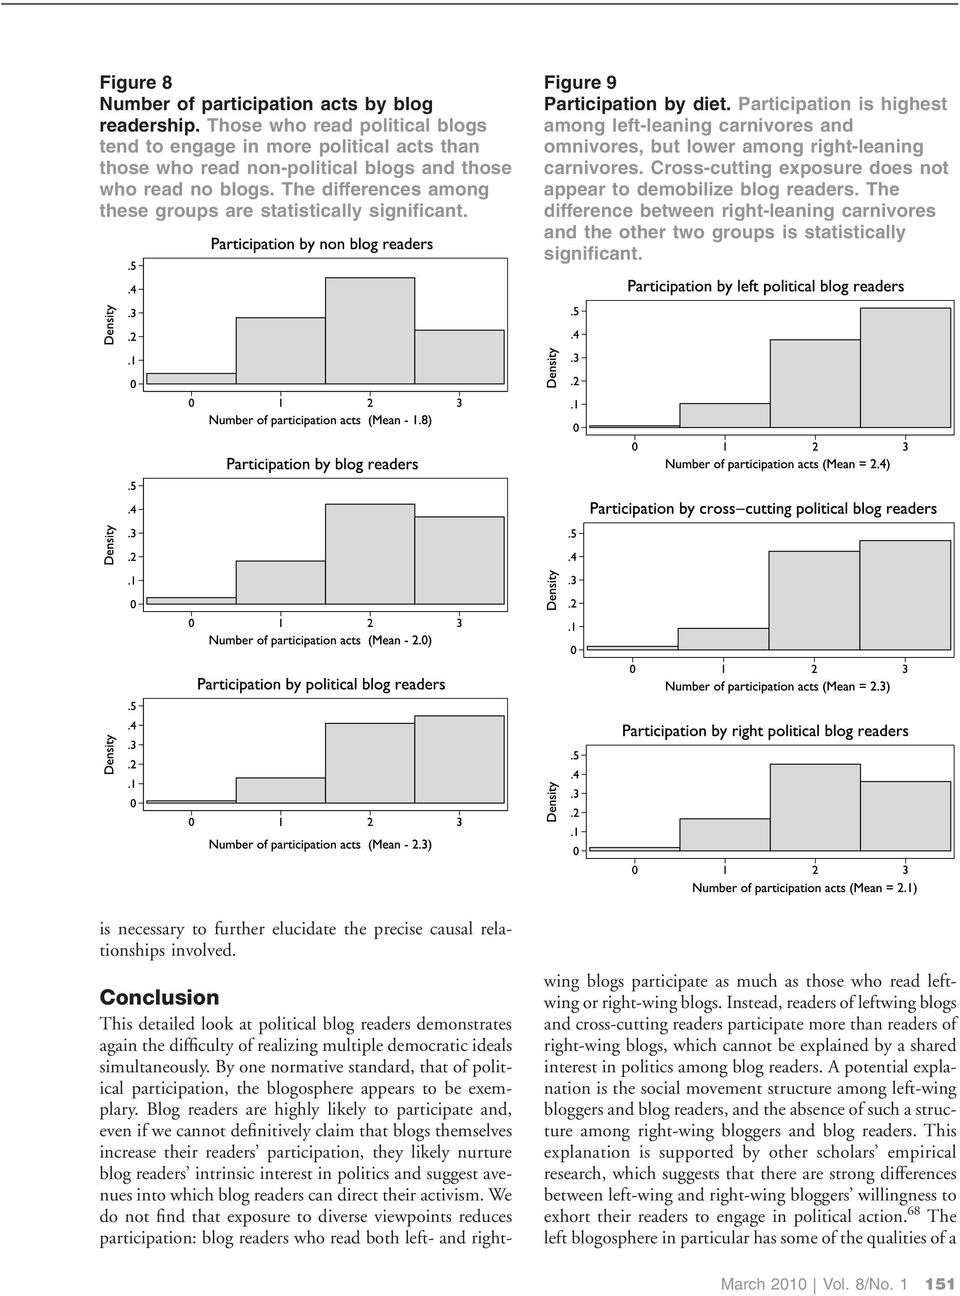 Participation is highest among left-leaning carnivores and omnivores, but lower among right-leaning carnivores. Cross-cutting exposure does not appear to demobilize blog readers.